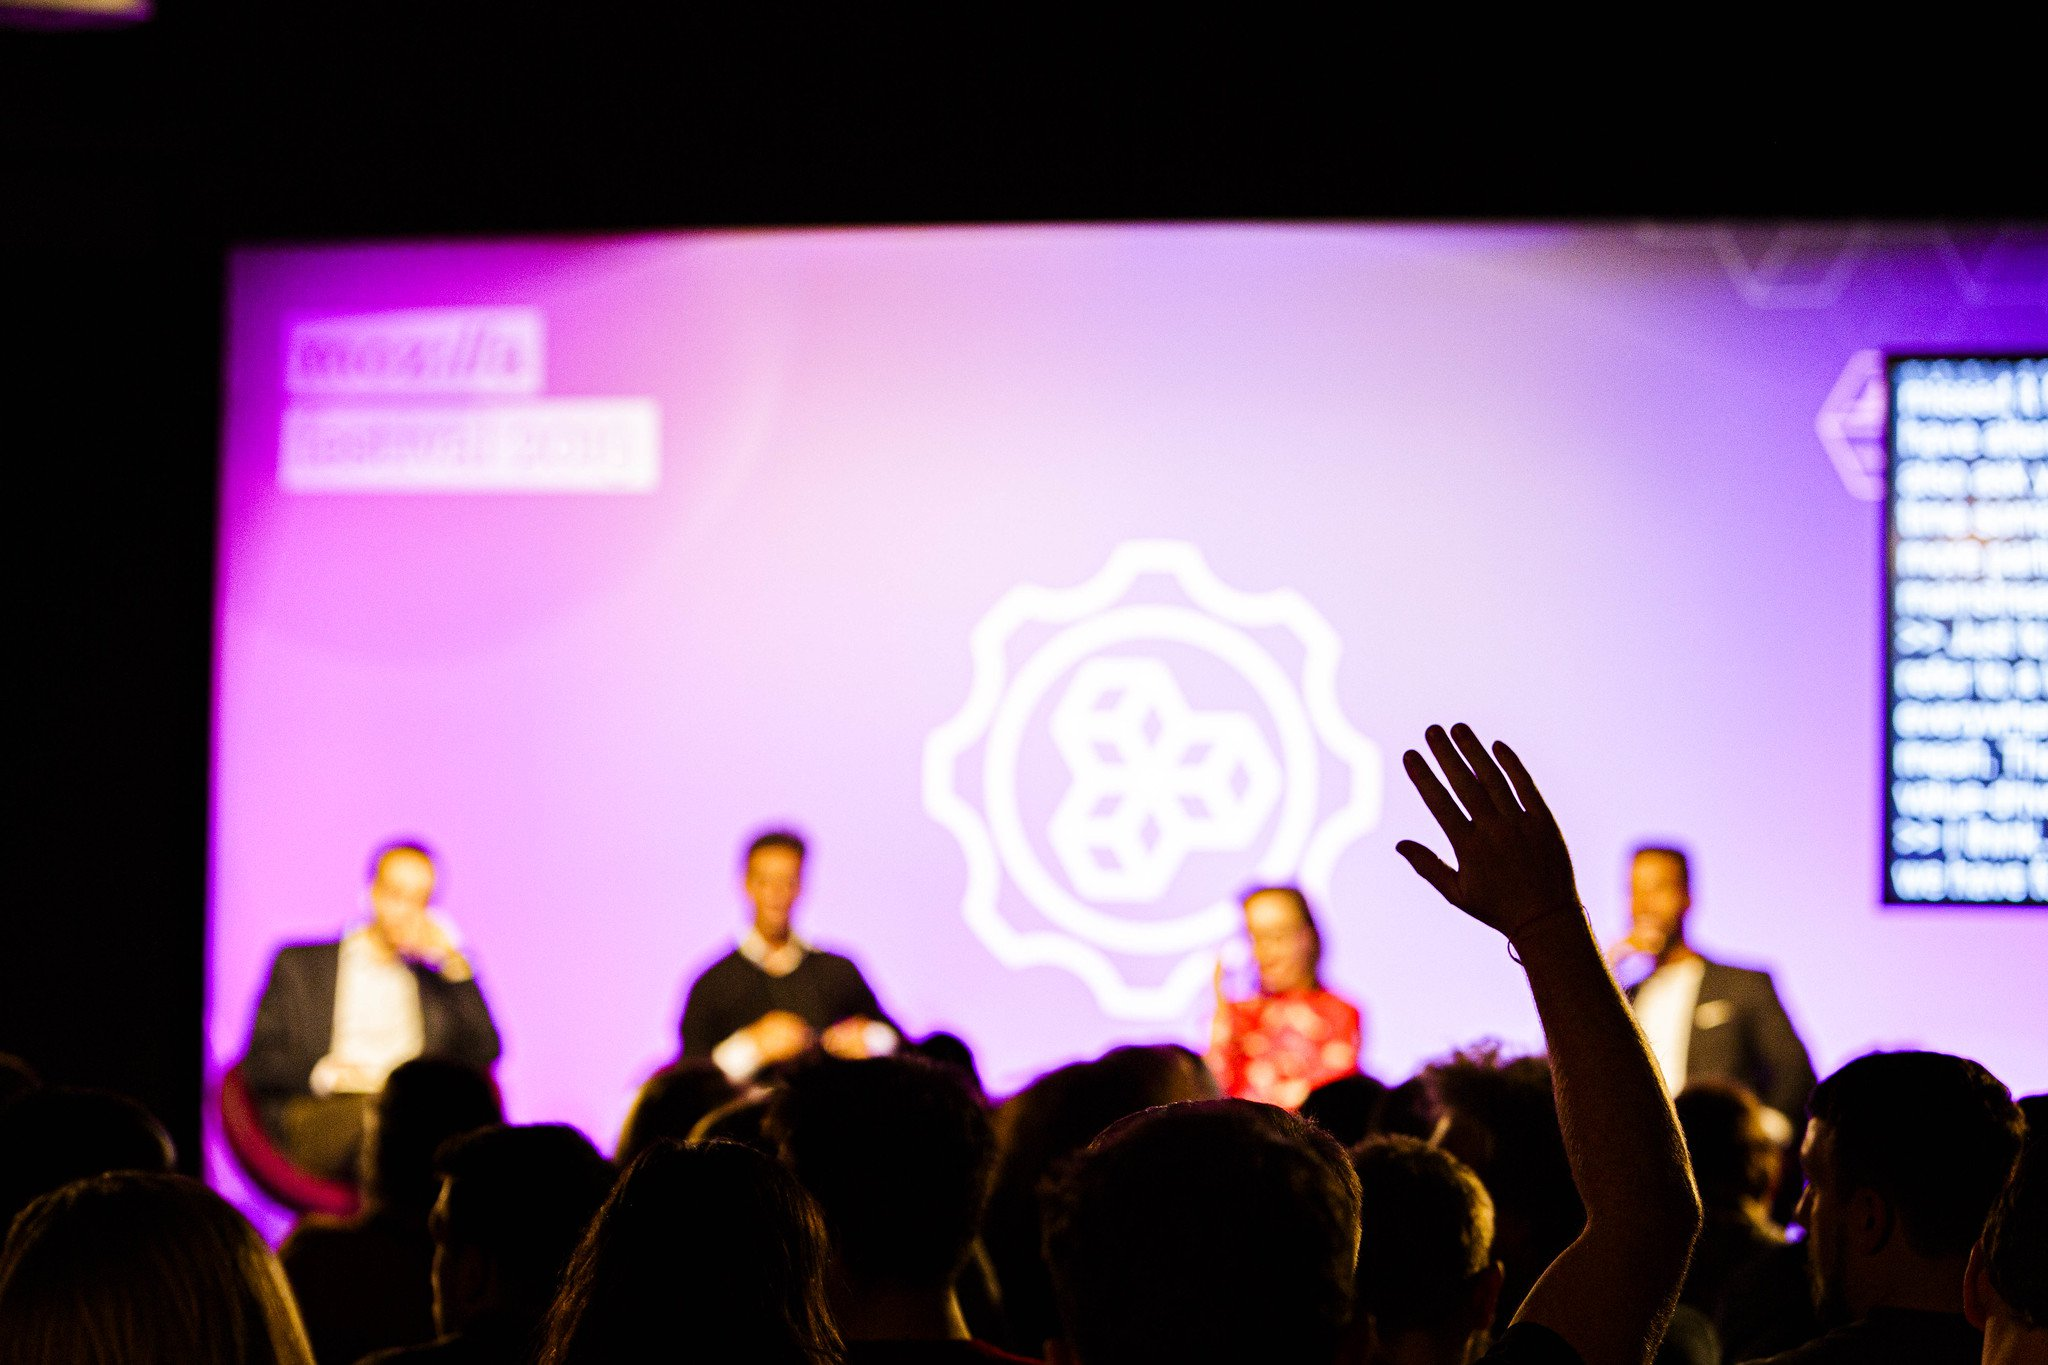 A panel of four speakers on stage in the background, with a person raising their hand in the foreground.